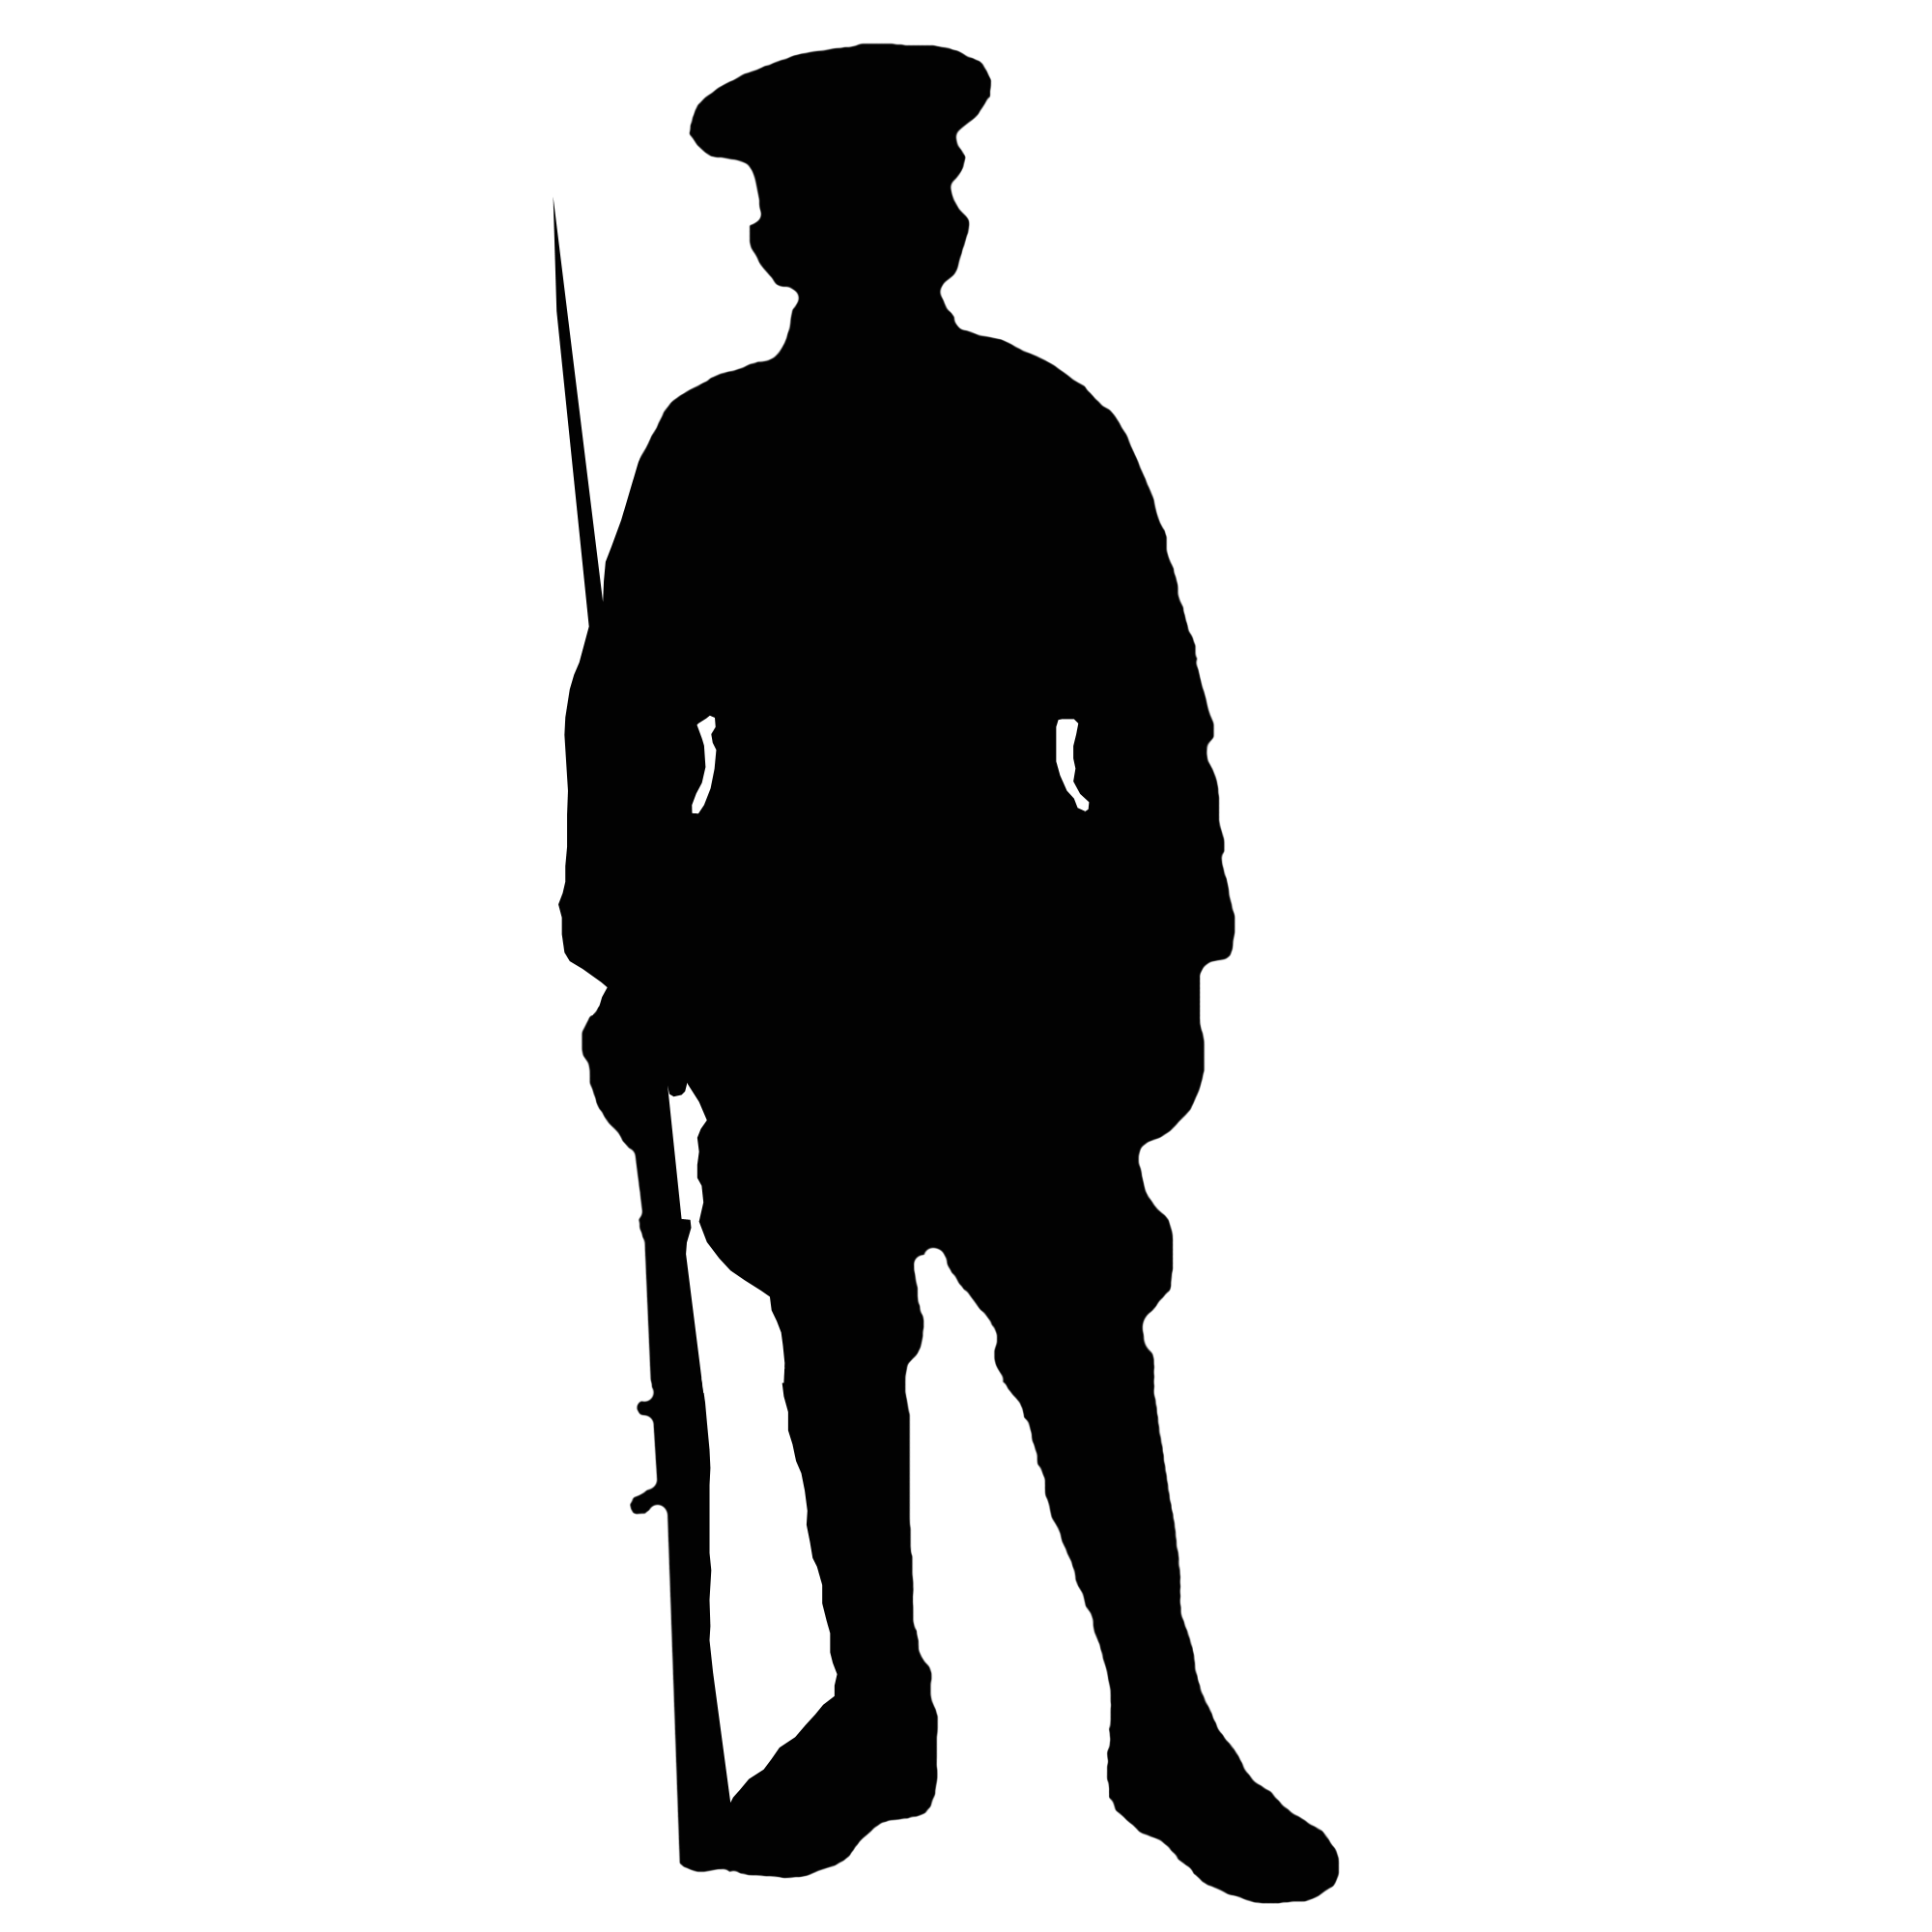 silhouette of soldier 21 soldier silhouettes soldiers svg cut files soldier of soldier silhouette